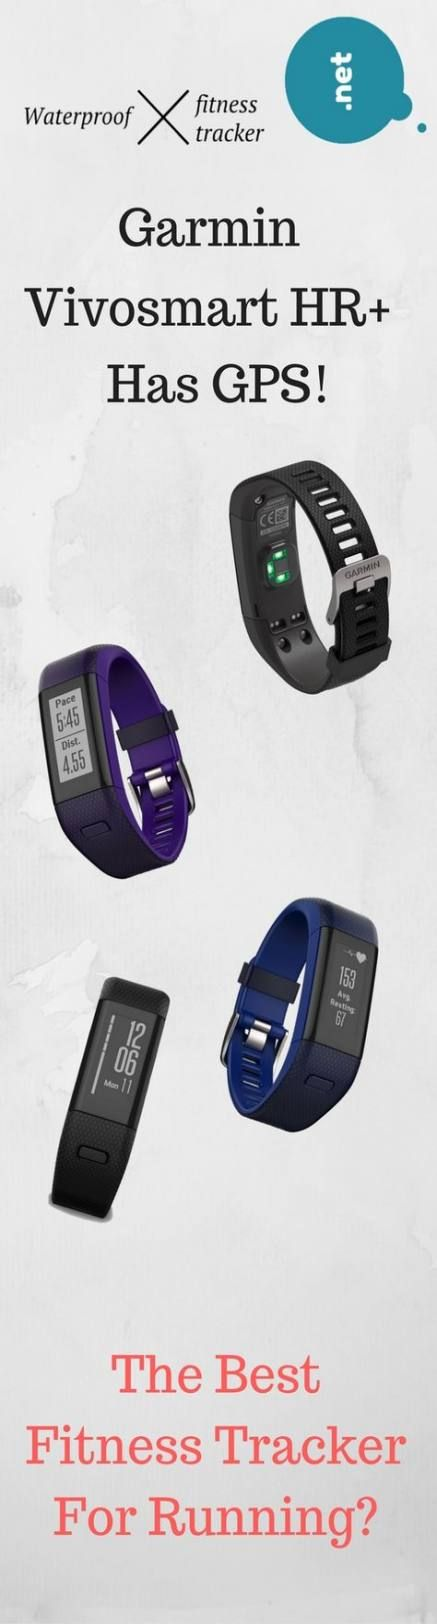 Fitness Gear Gadgets 64 Ideas For 2019 #fitness